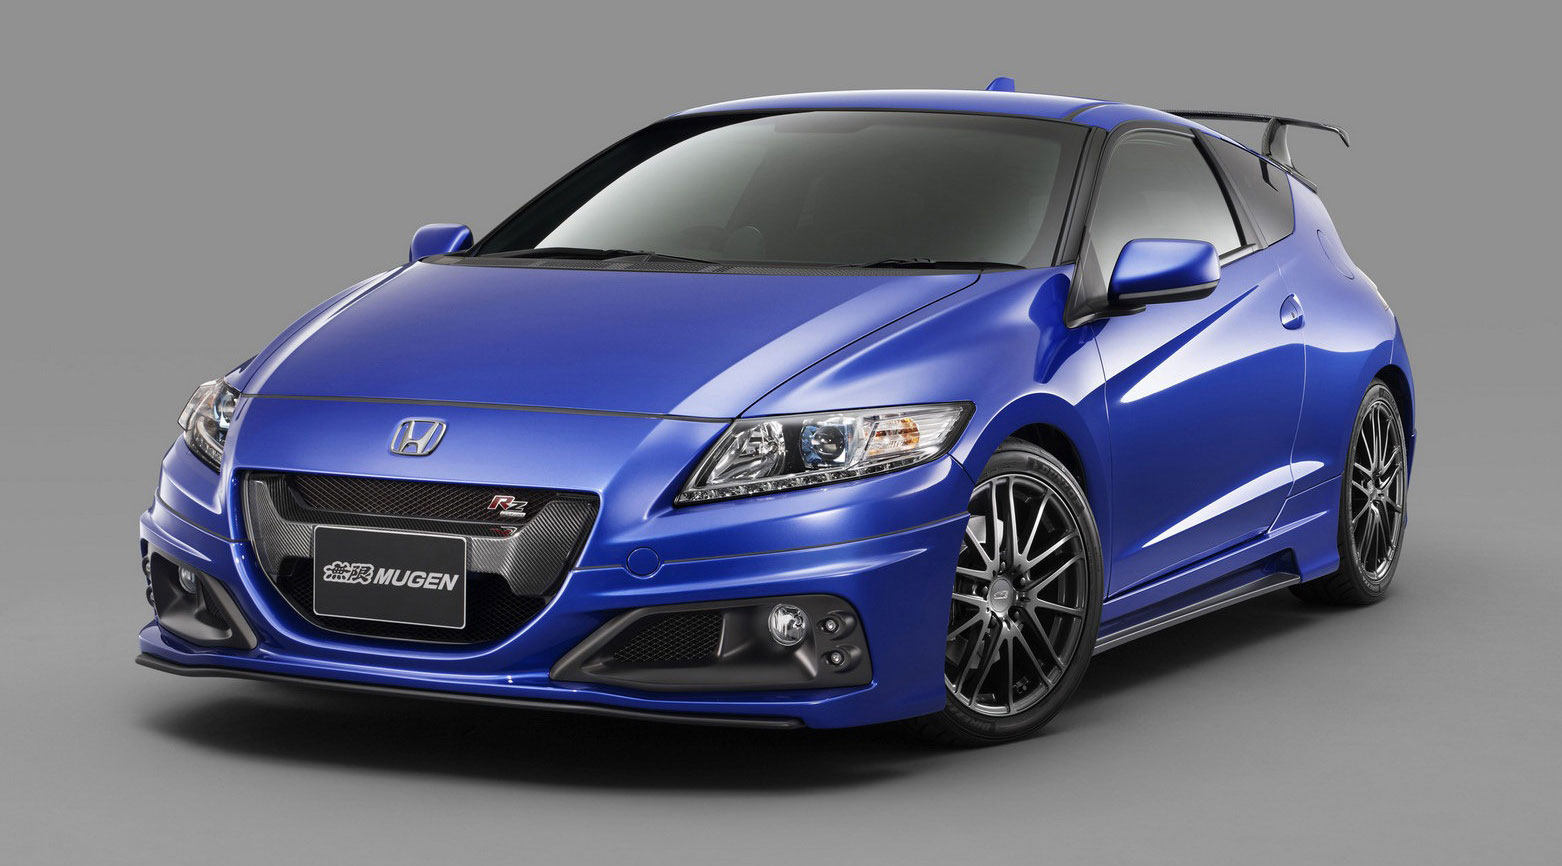 honda cr z mugen rz for 2013 tokyo auto salon. Black Bedroom Furniture Sets. Home Design Ideas